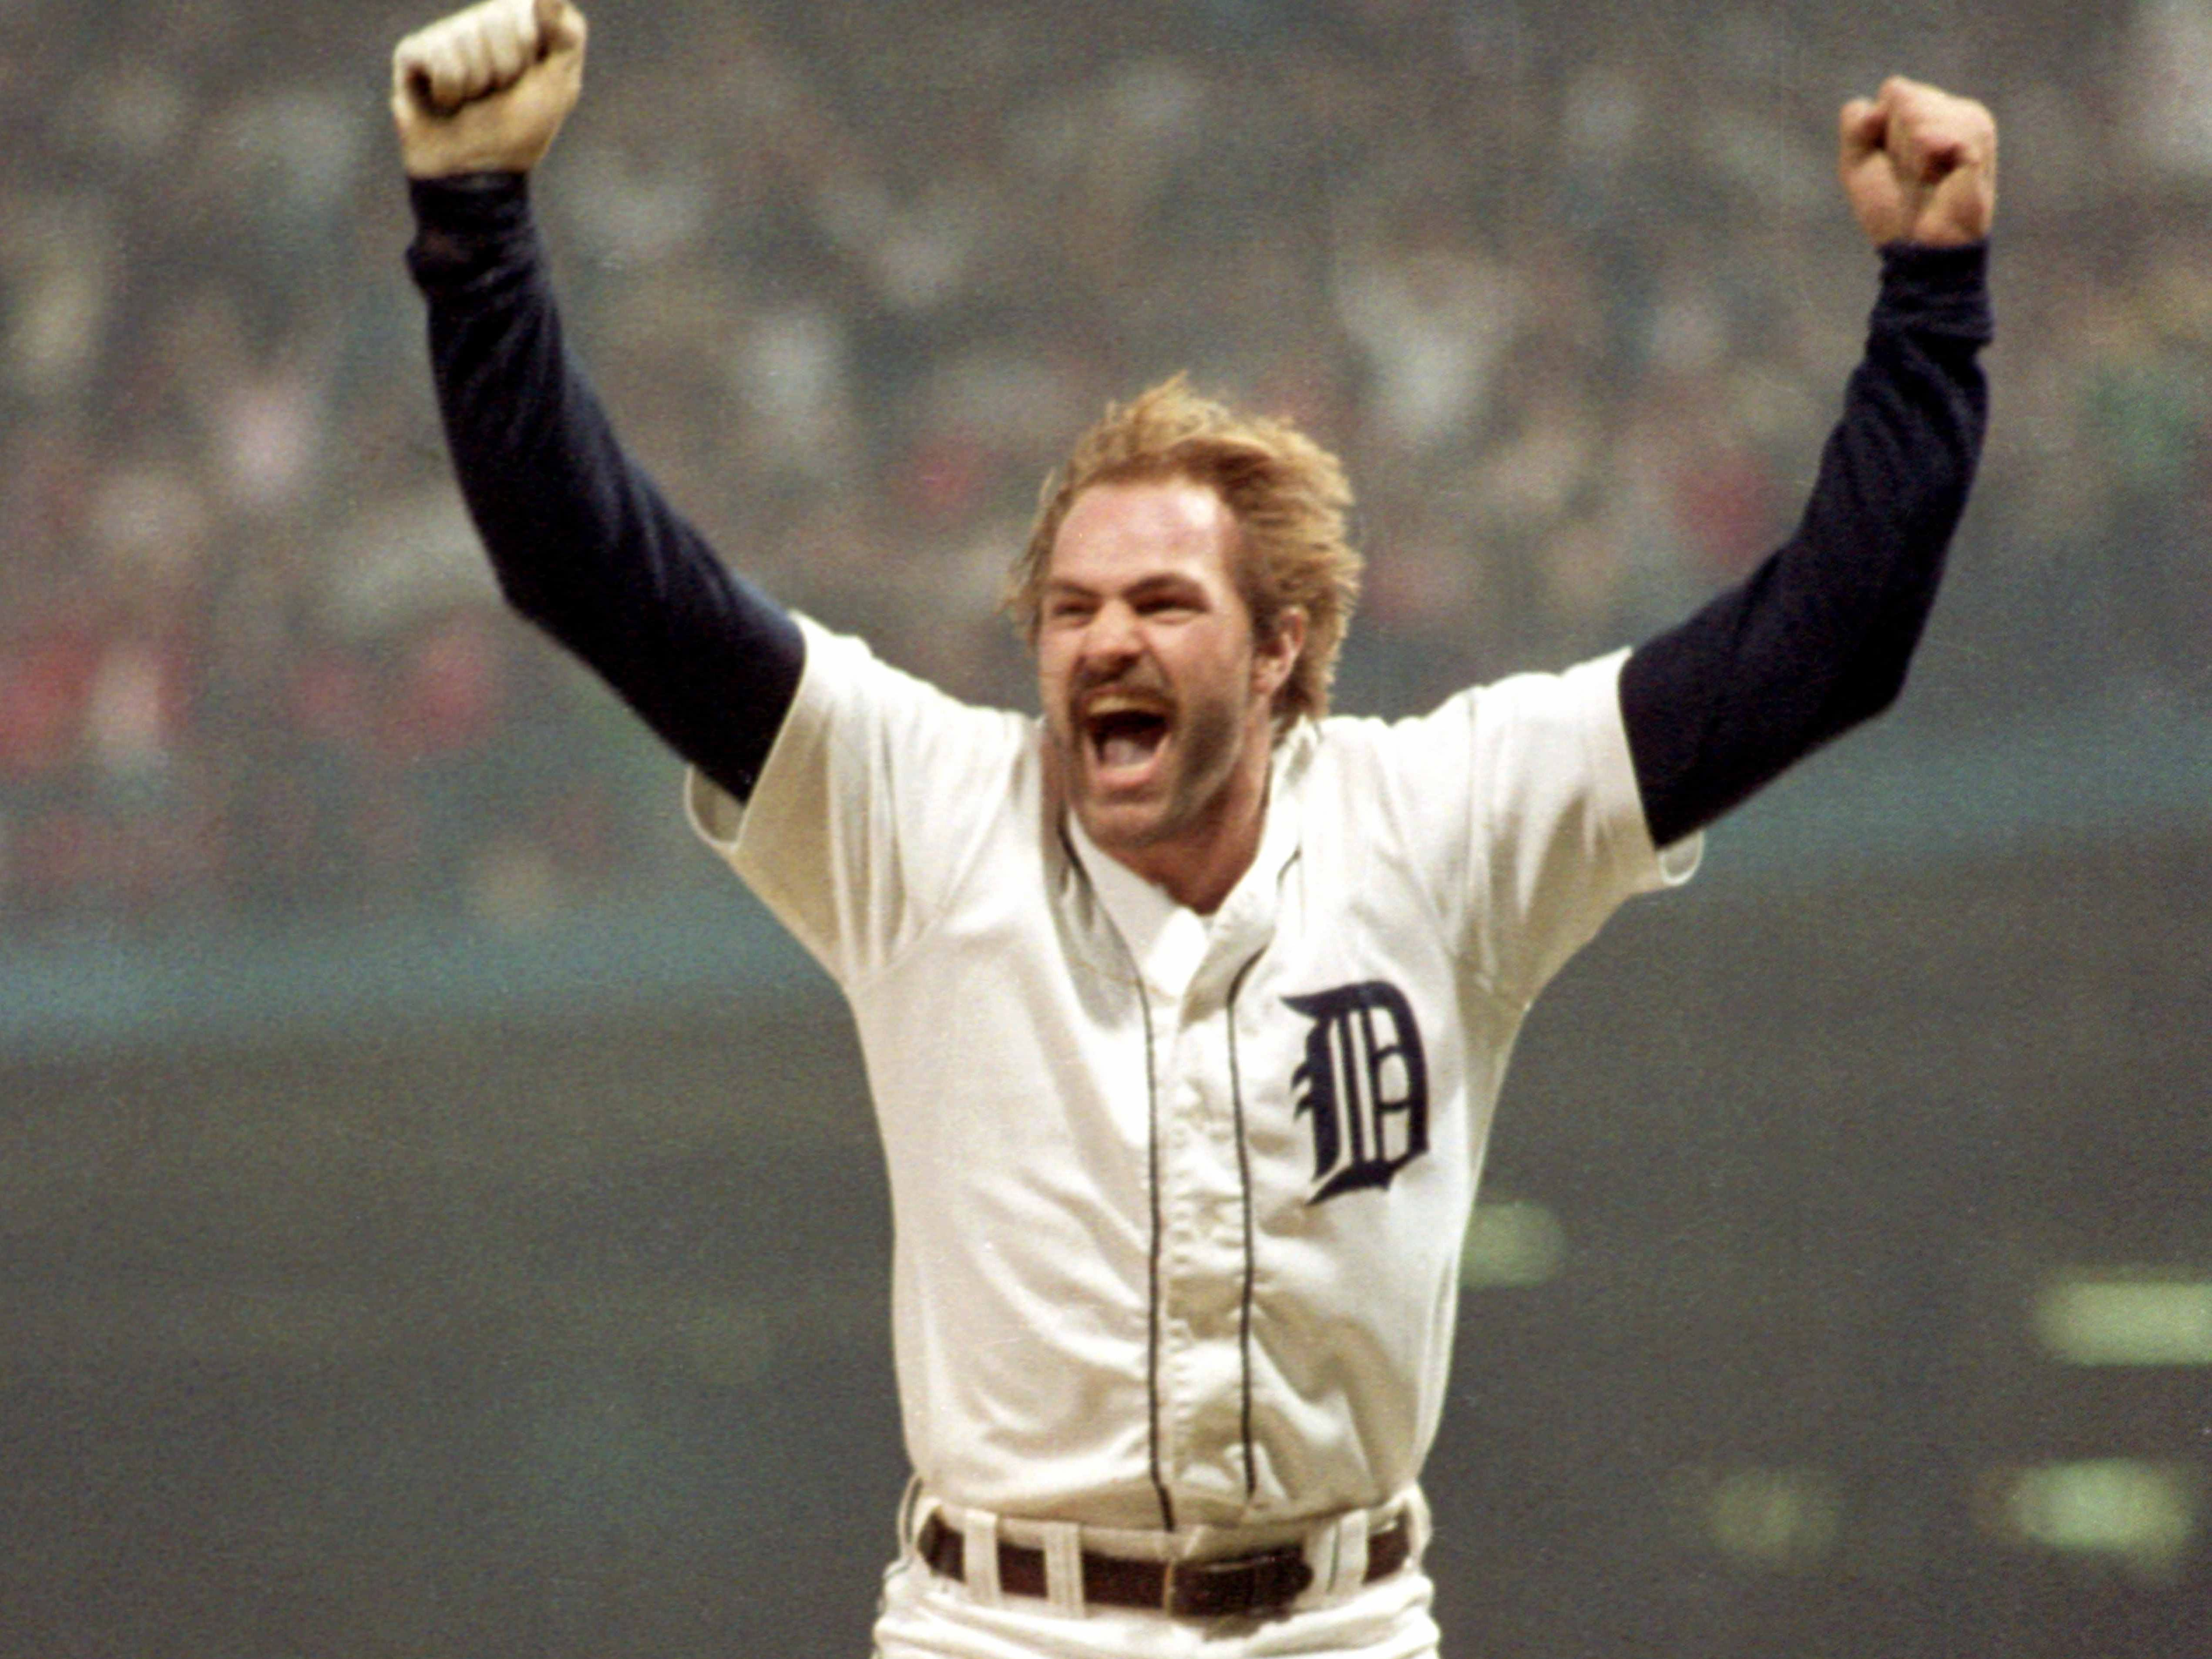 Detroit Tigers history loves October 14; relive these great moments